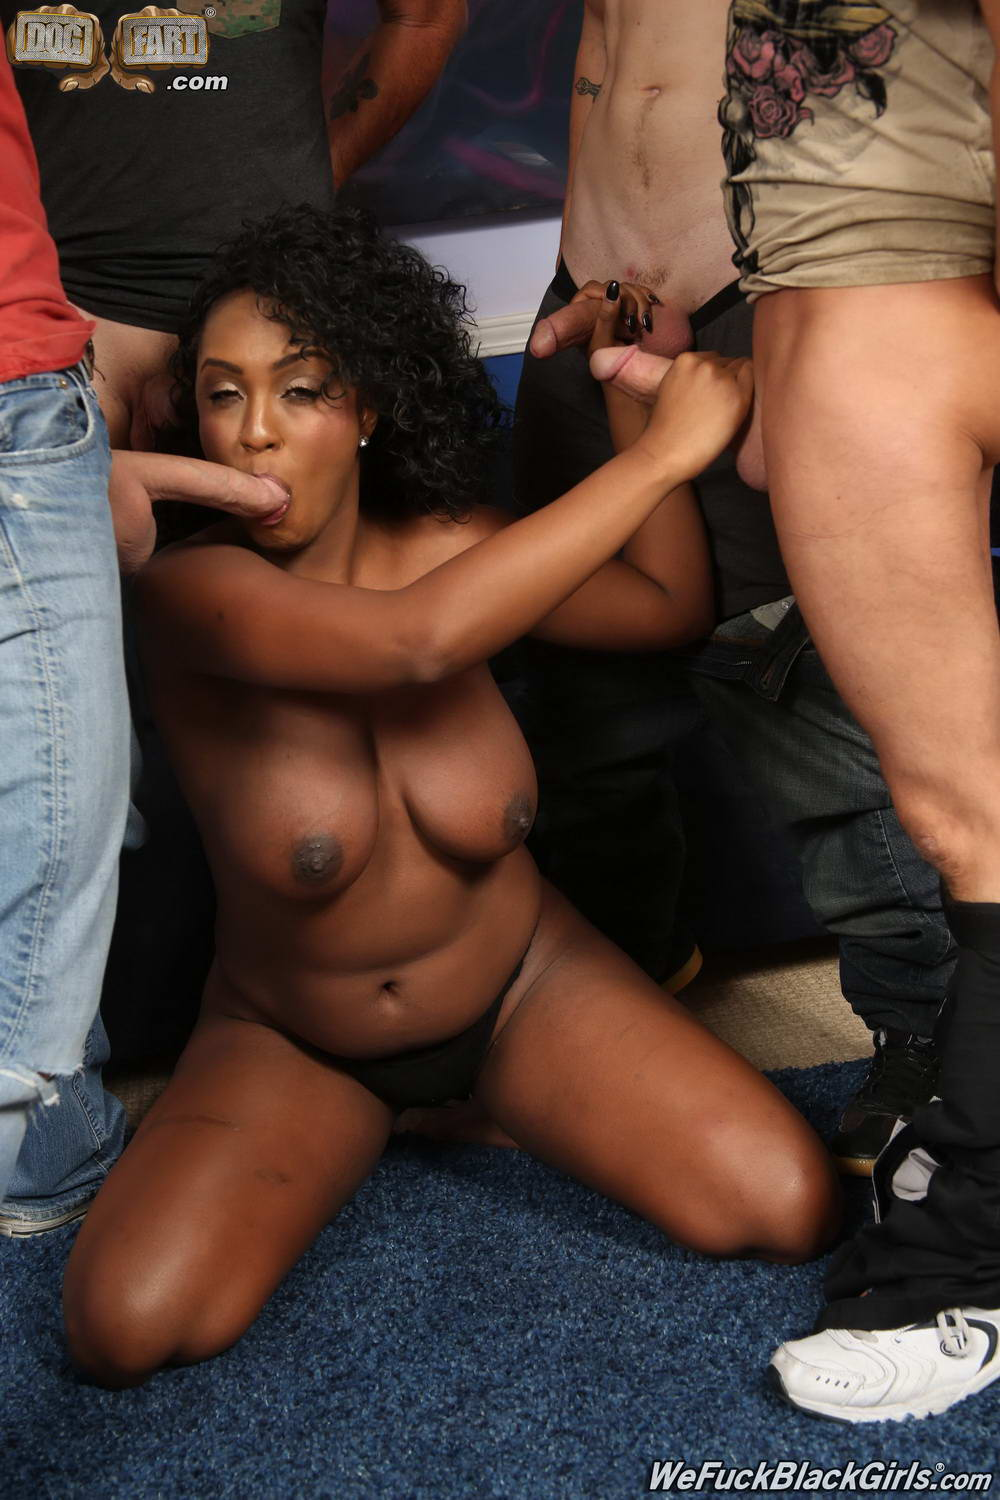 Black girls blow white boyz uyk6 - 1 part 6